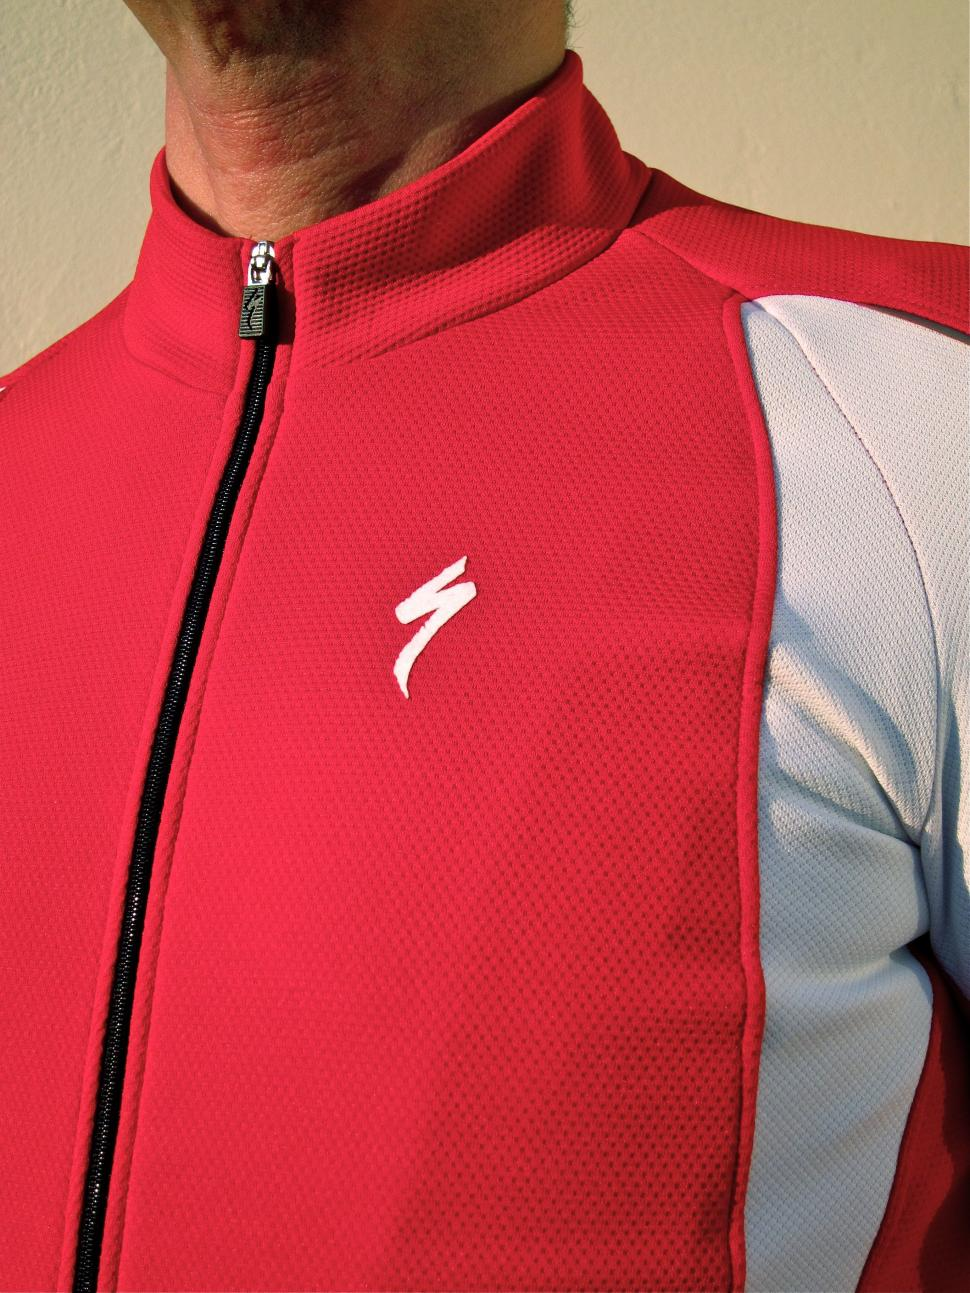 Review  Specialized Pro Long Sleeve Jersey  29ab3b39b